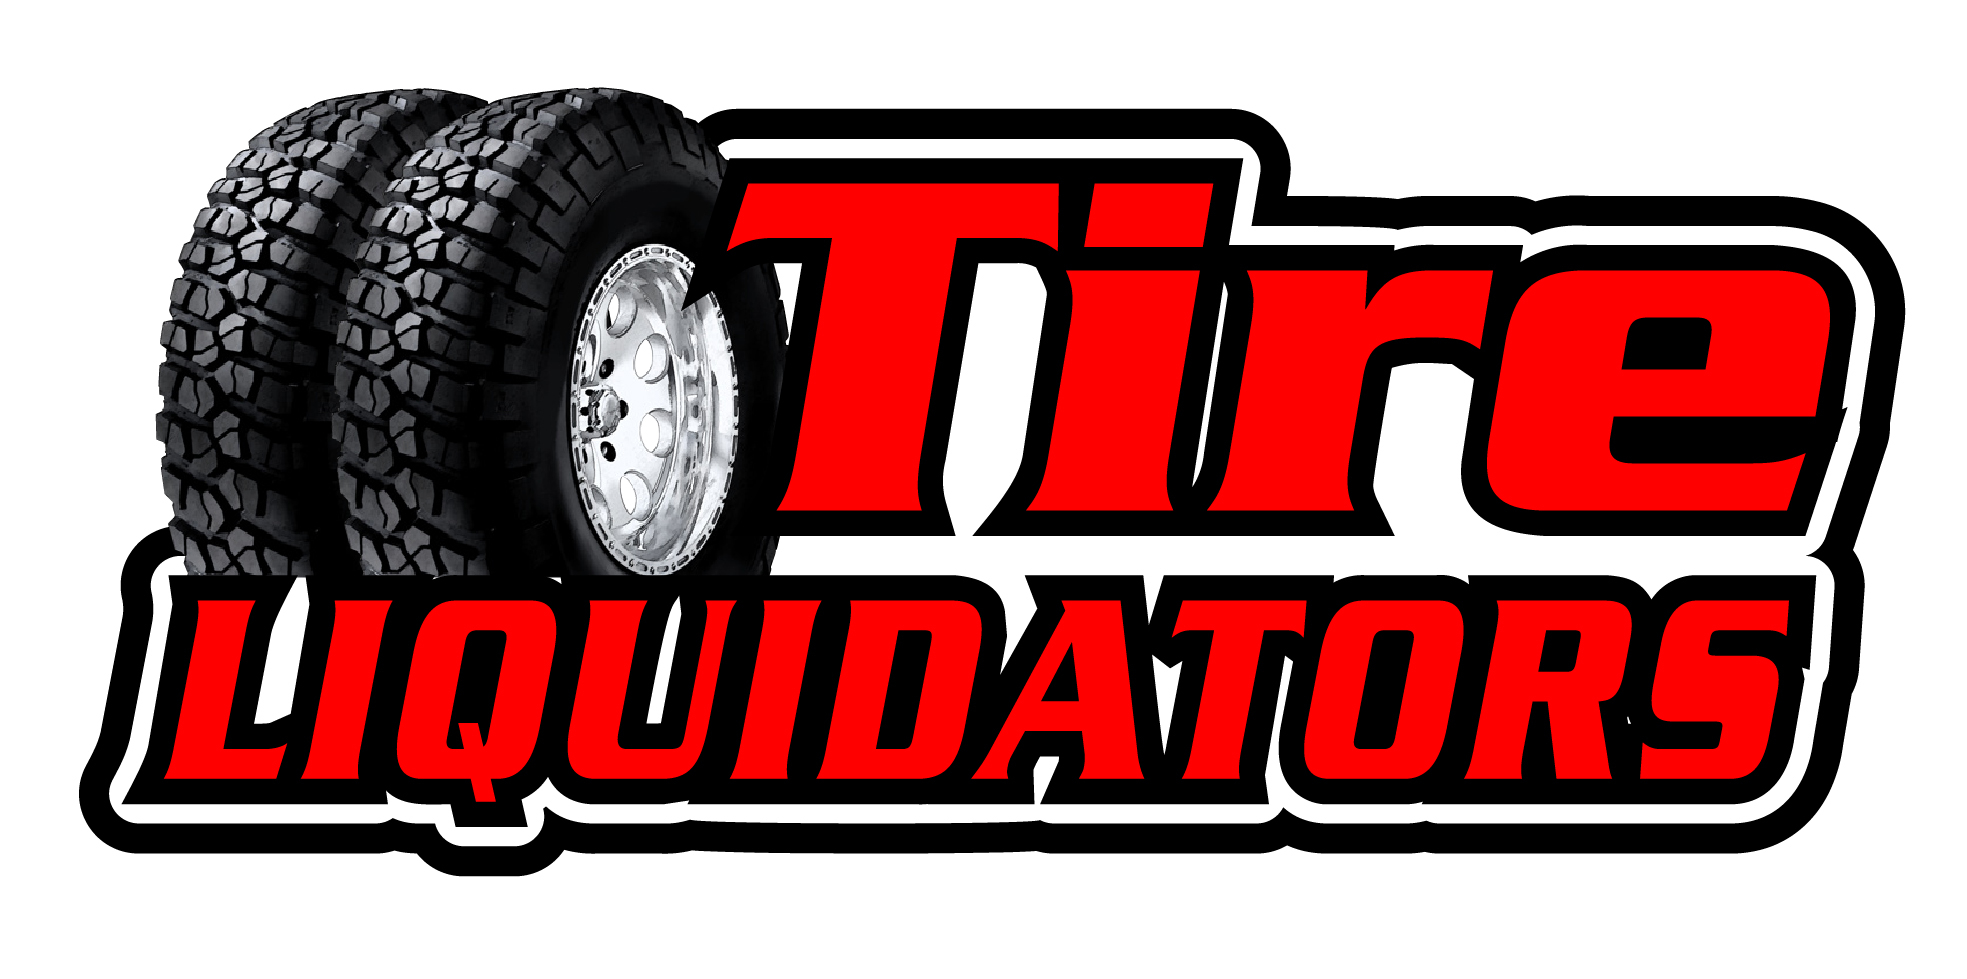 Cadillac Tires Prescott >> Tire Liquidators in Prescott Valley, AZ 86301 - ChamberofCommerce.com